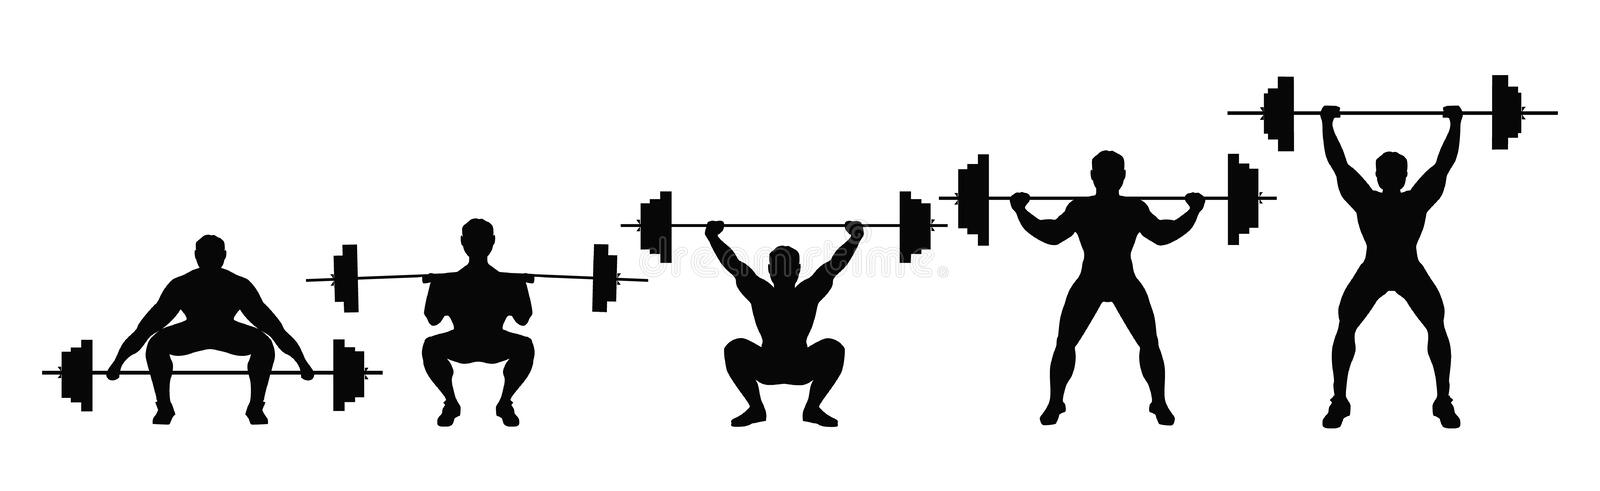 Posture accroupie avec le barbell illustration de vecteur